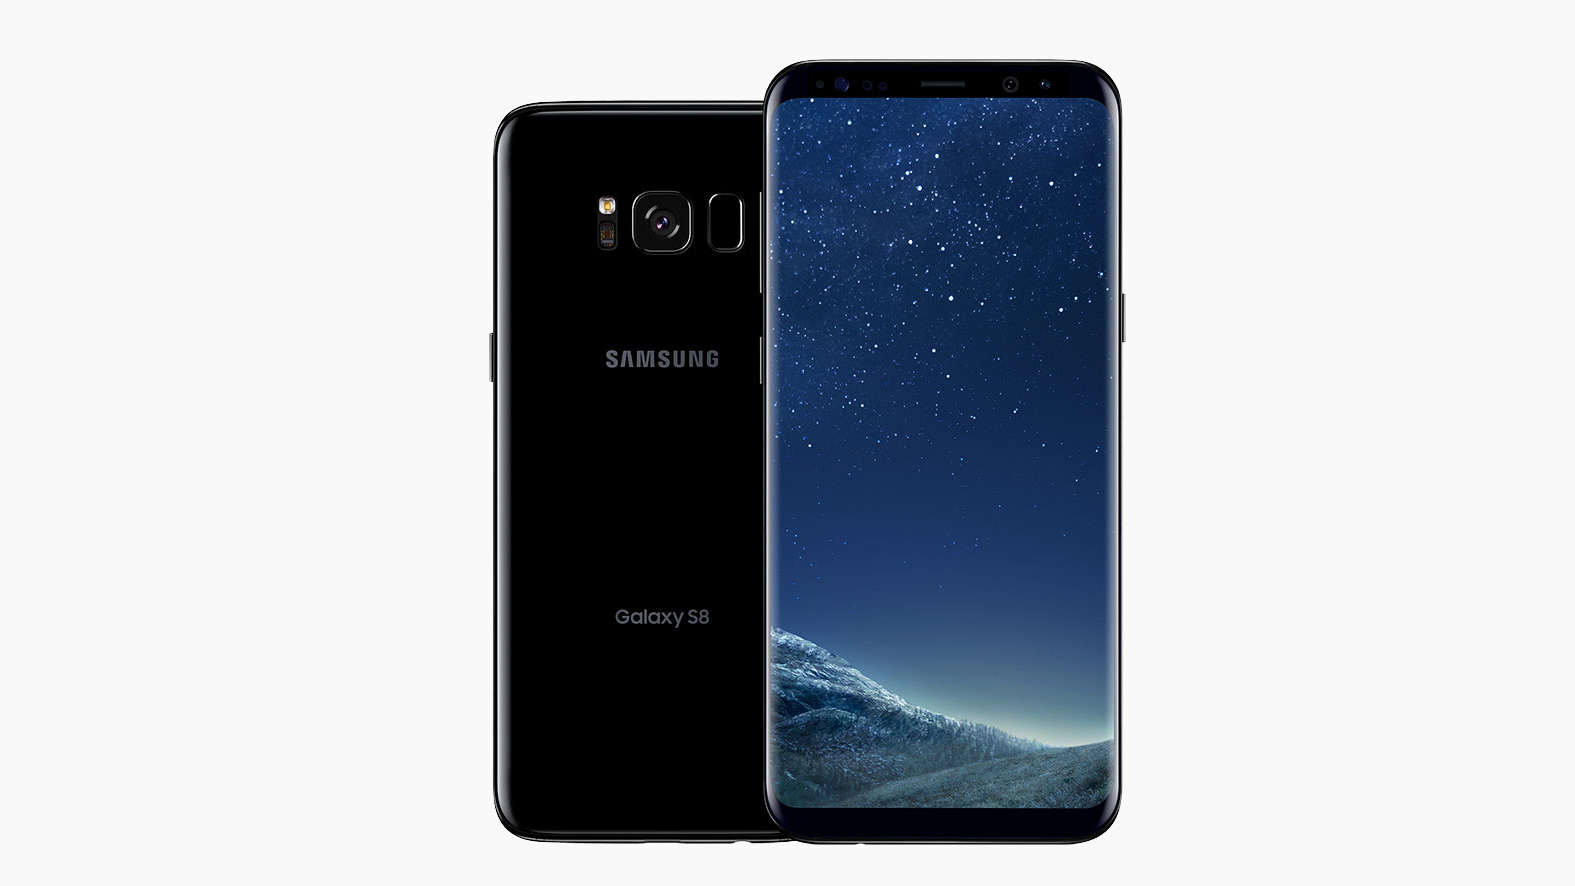 Samsung Galaxy S8 review: Is it enough to make you forget the Note 7